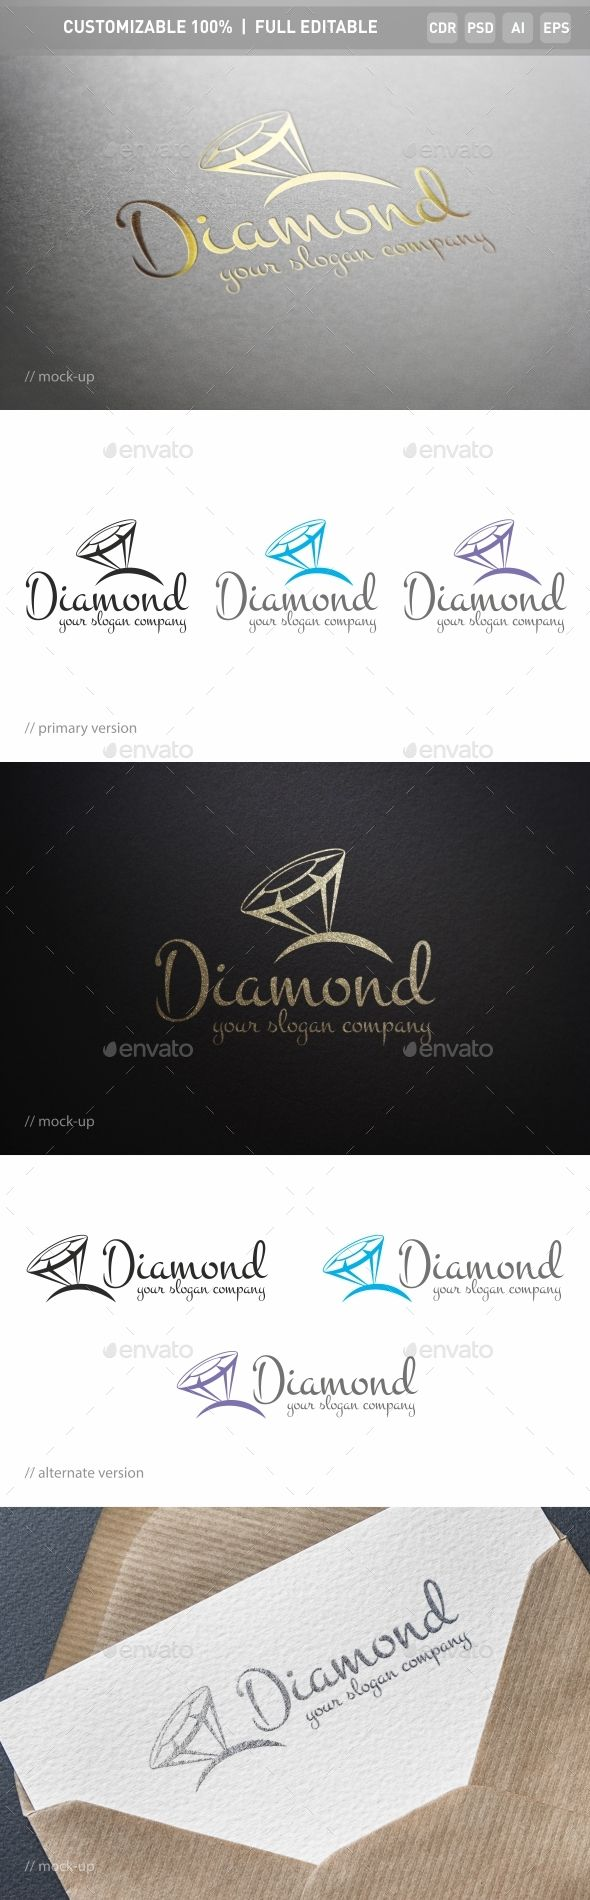 Diamonds Logo Template — Photoshop PSD #diamond logo #high-class • Download here → https://graphicriver.net/item/diamonds-logo-template/17446692?ref=pxcr